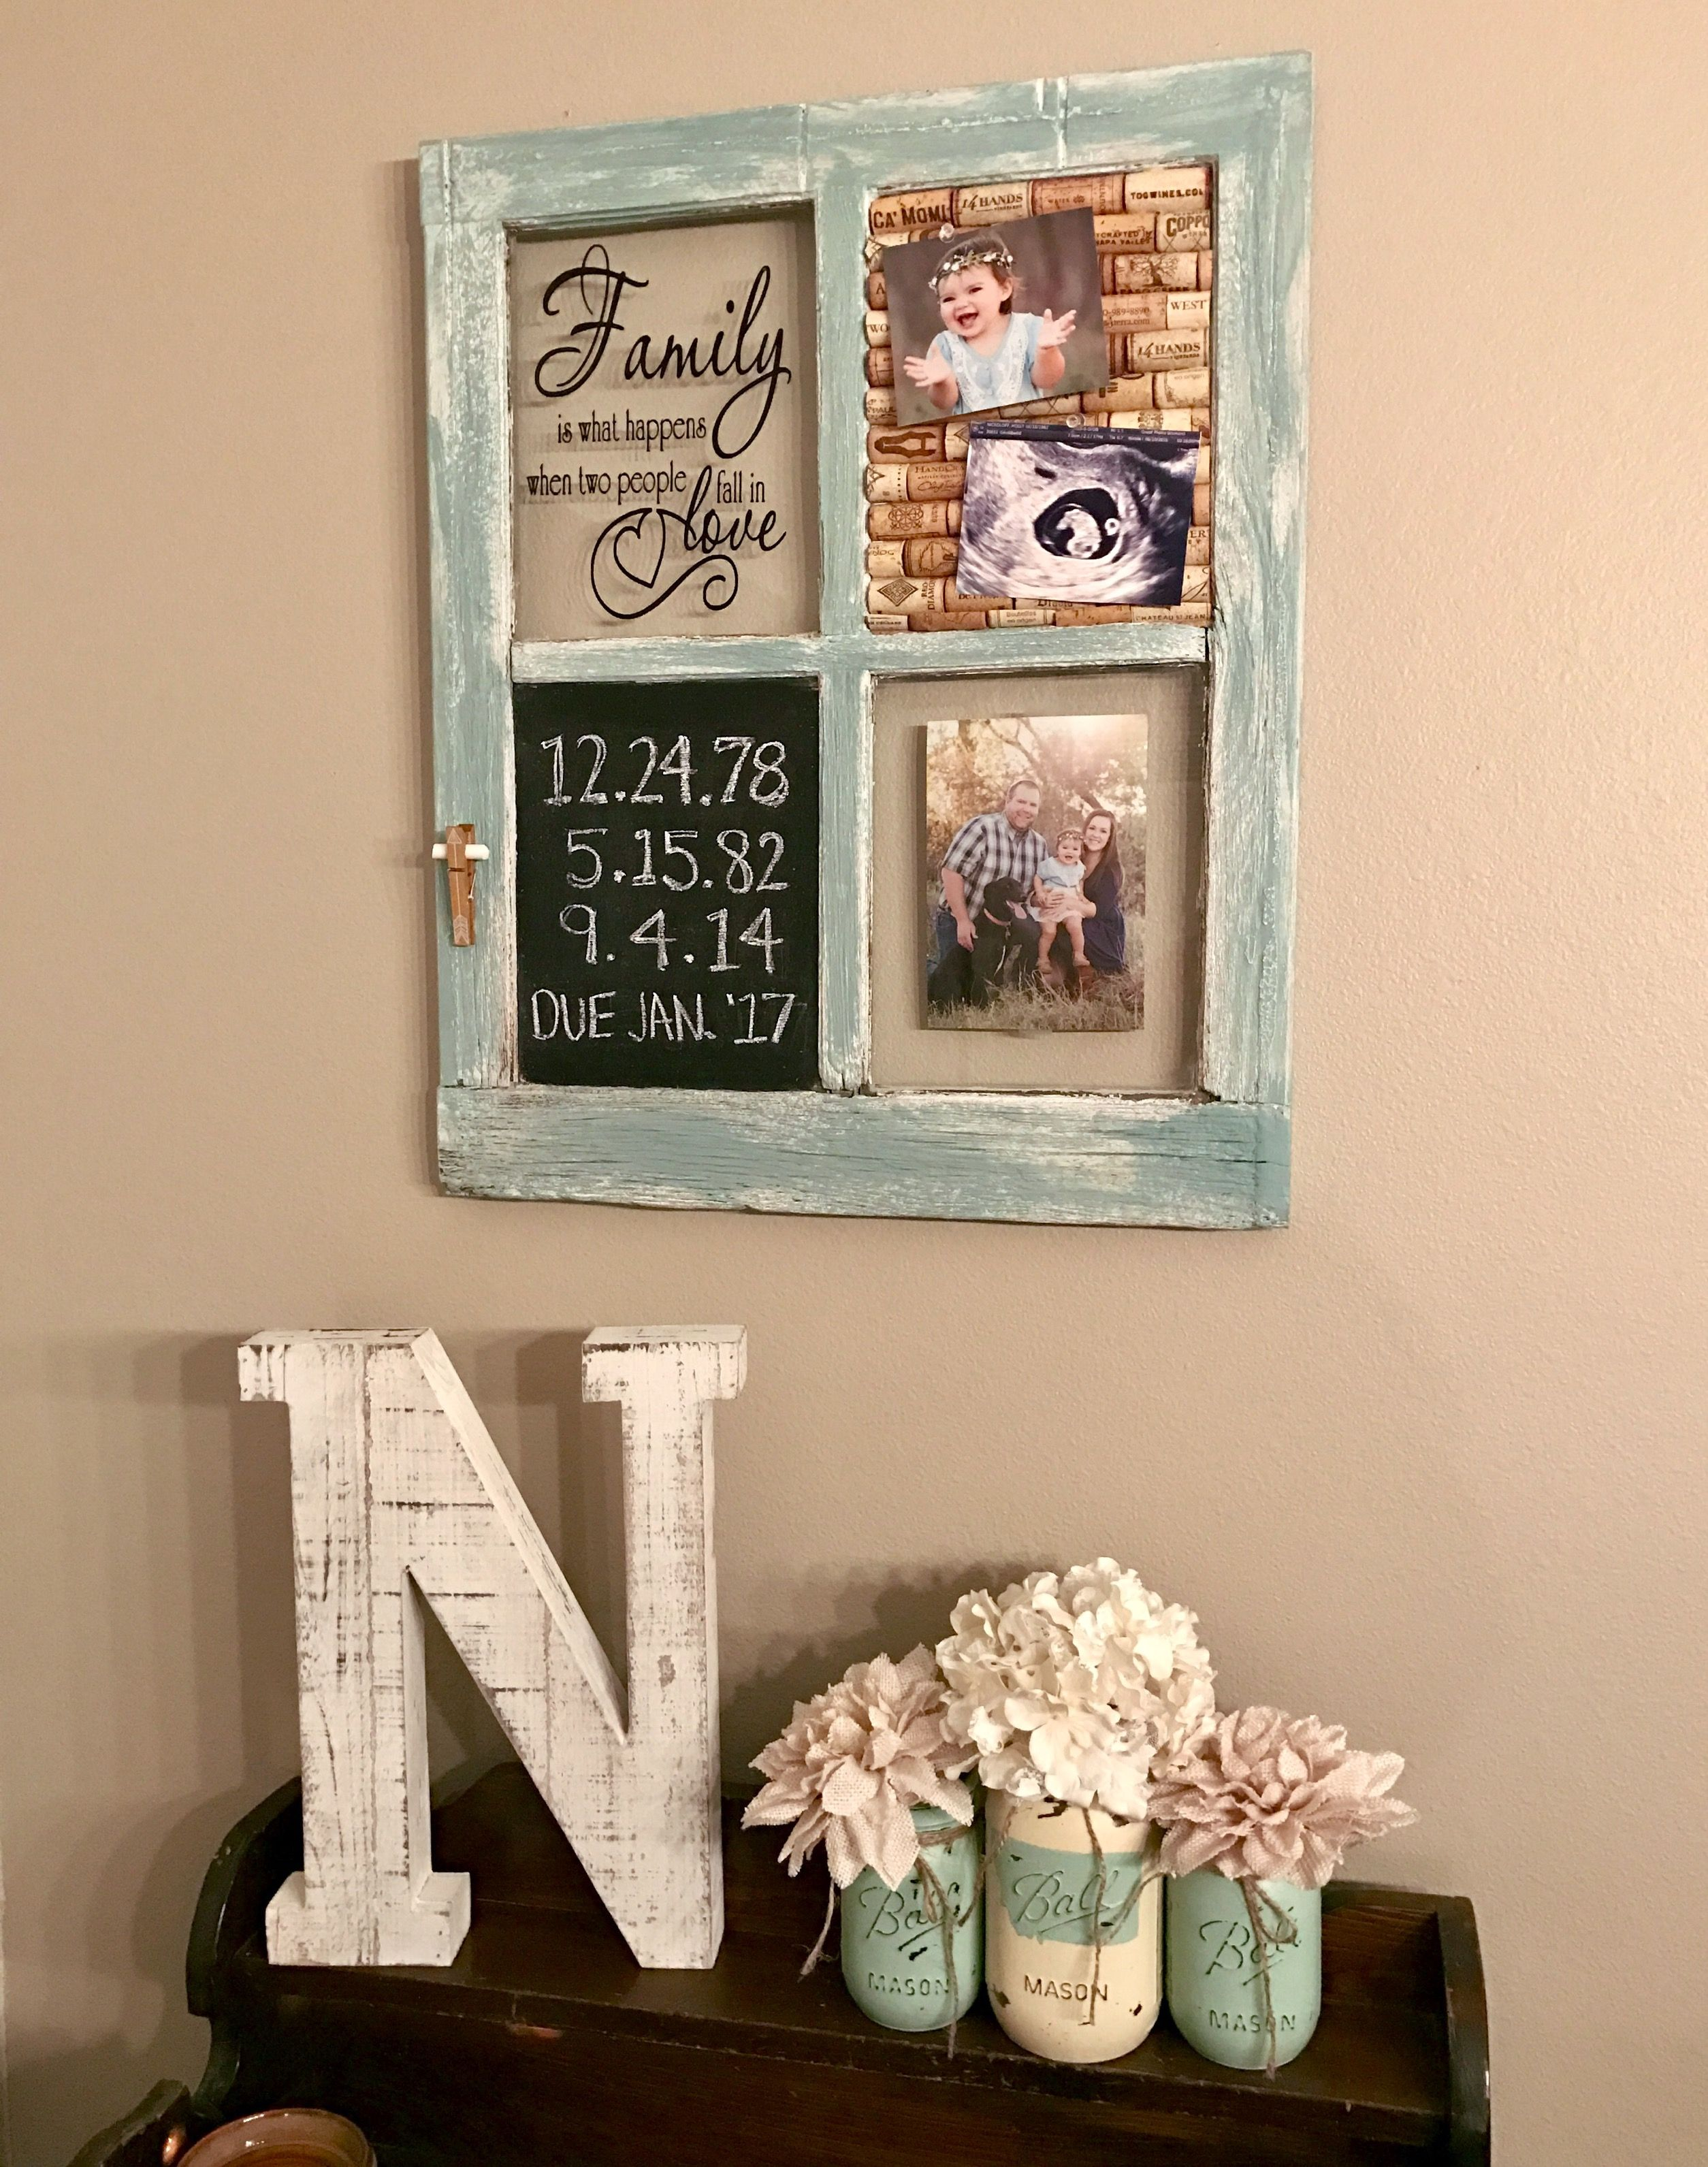 Upstairs hallway decor  Pin by Kassidy Lee on Apartment Living  Pinterest  Cork boards